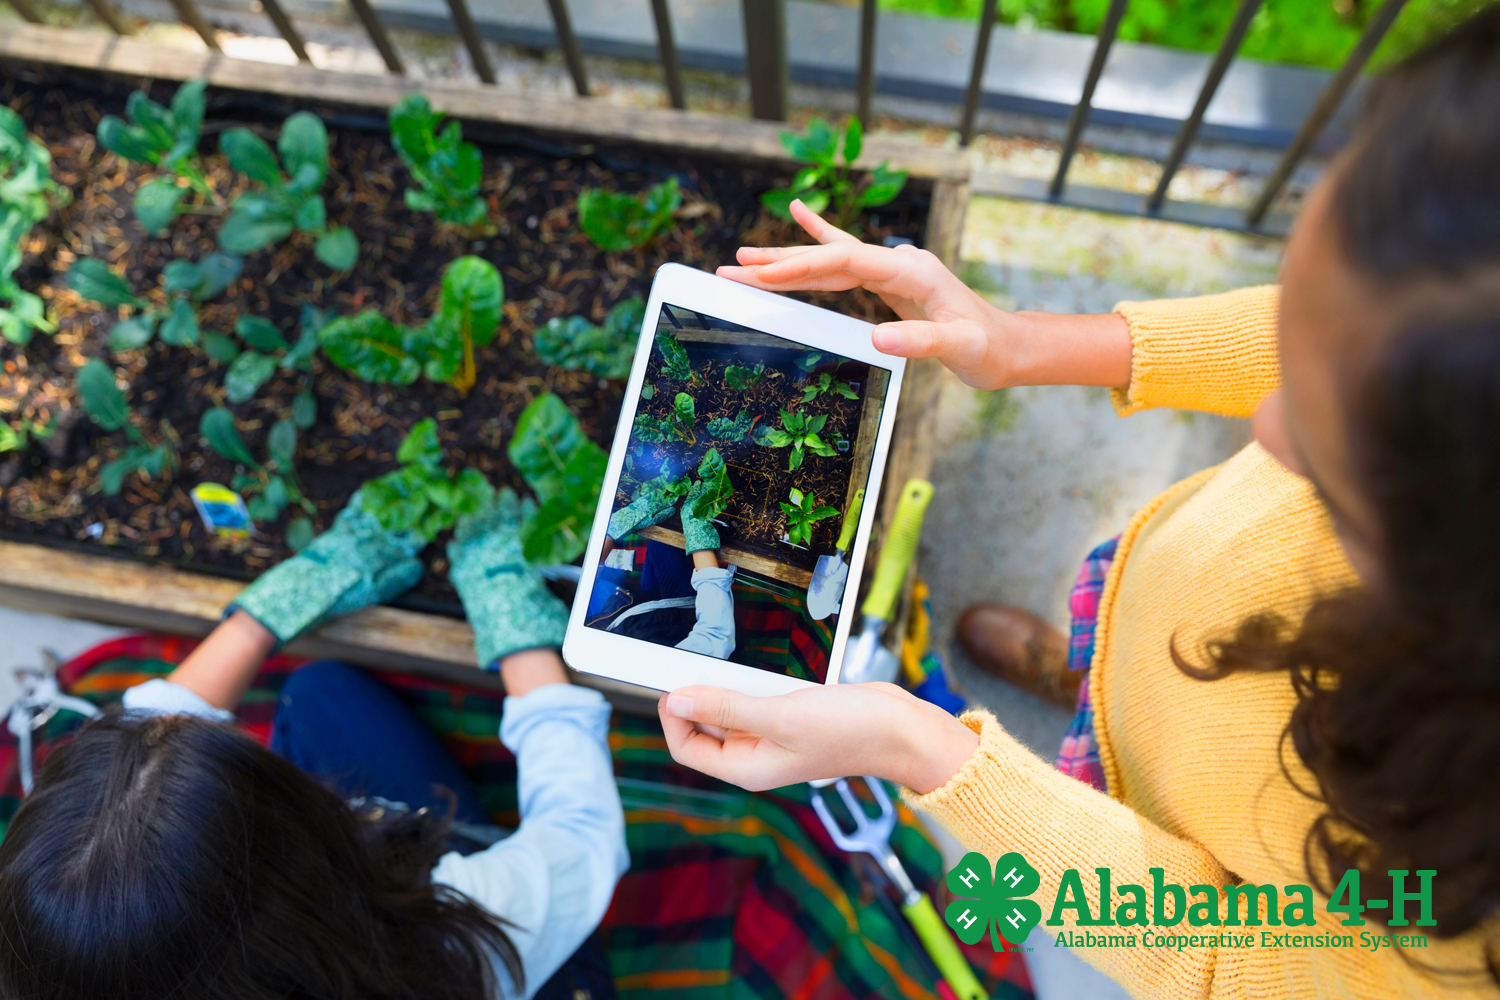 Alabama 4-H Grows participation